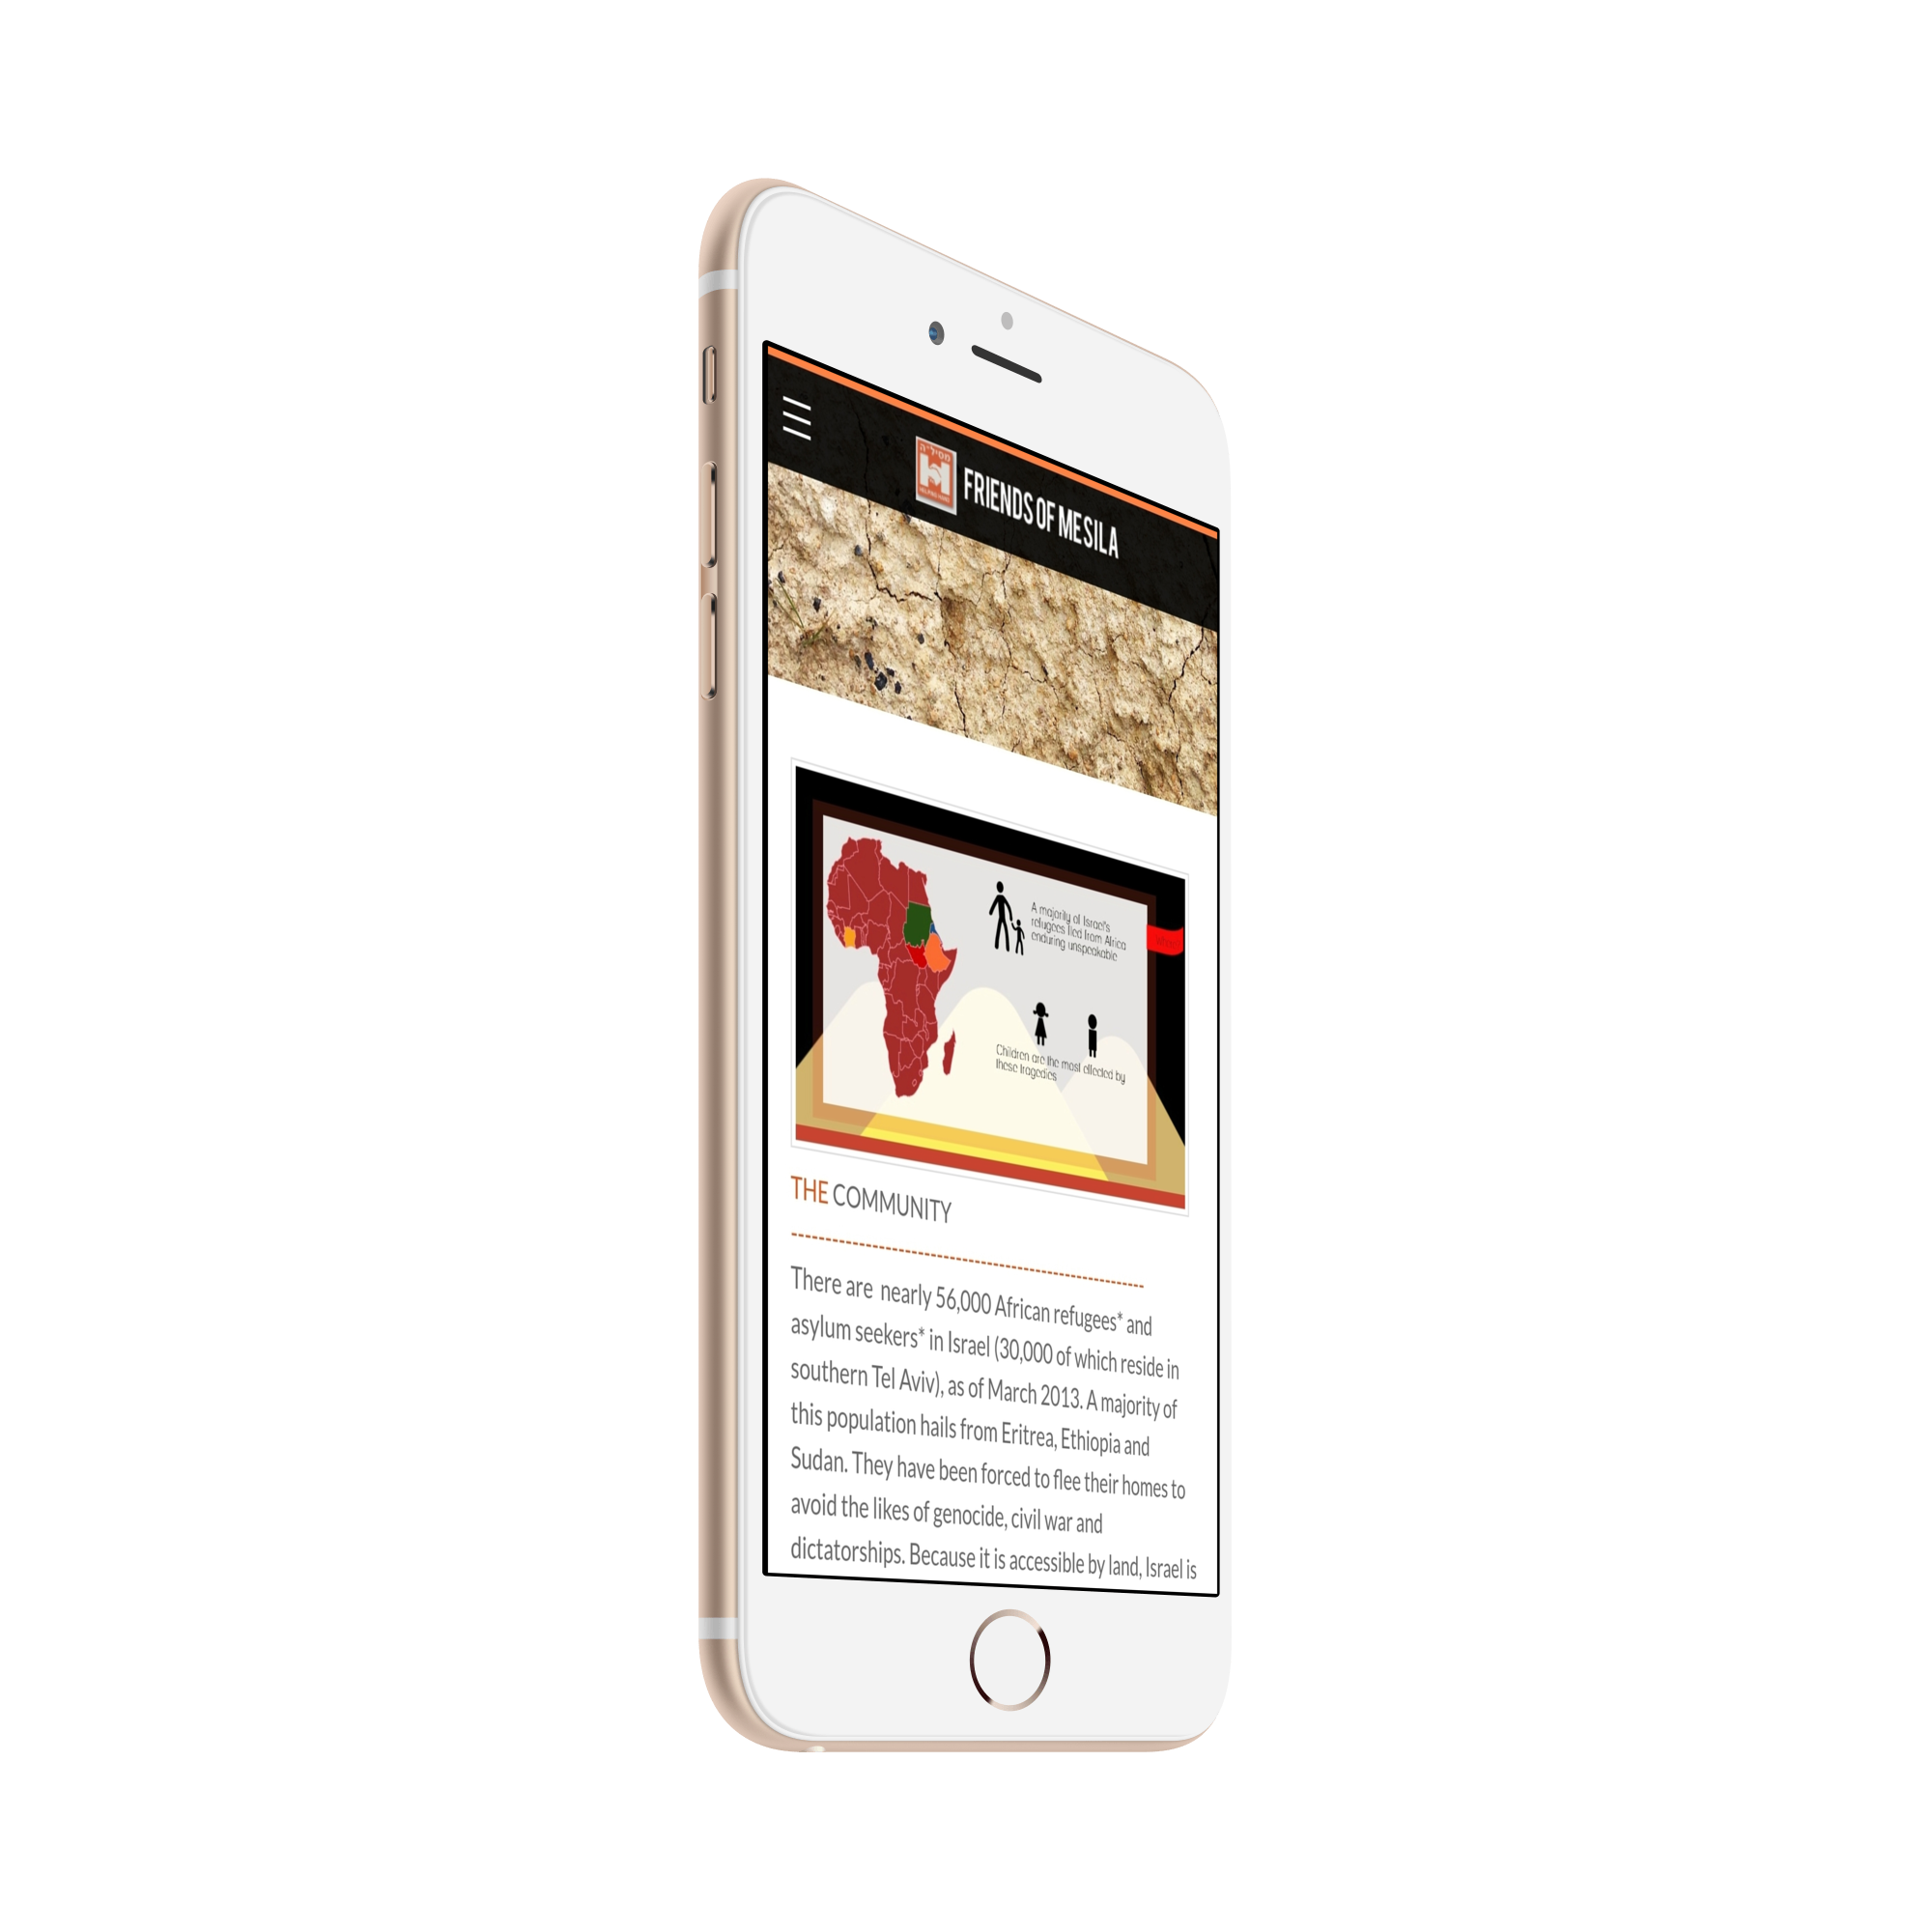 huge mesila_iphone6plus_gold_side1.png